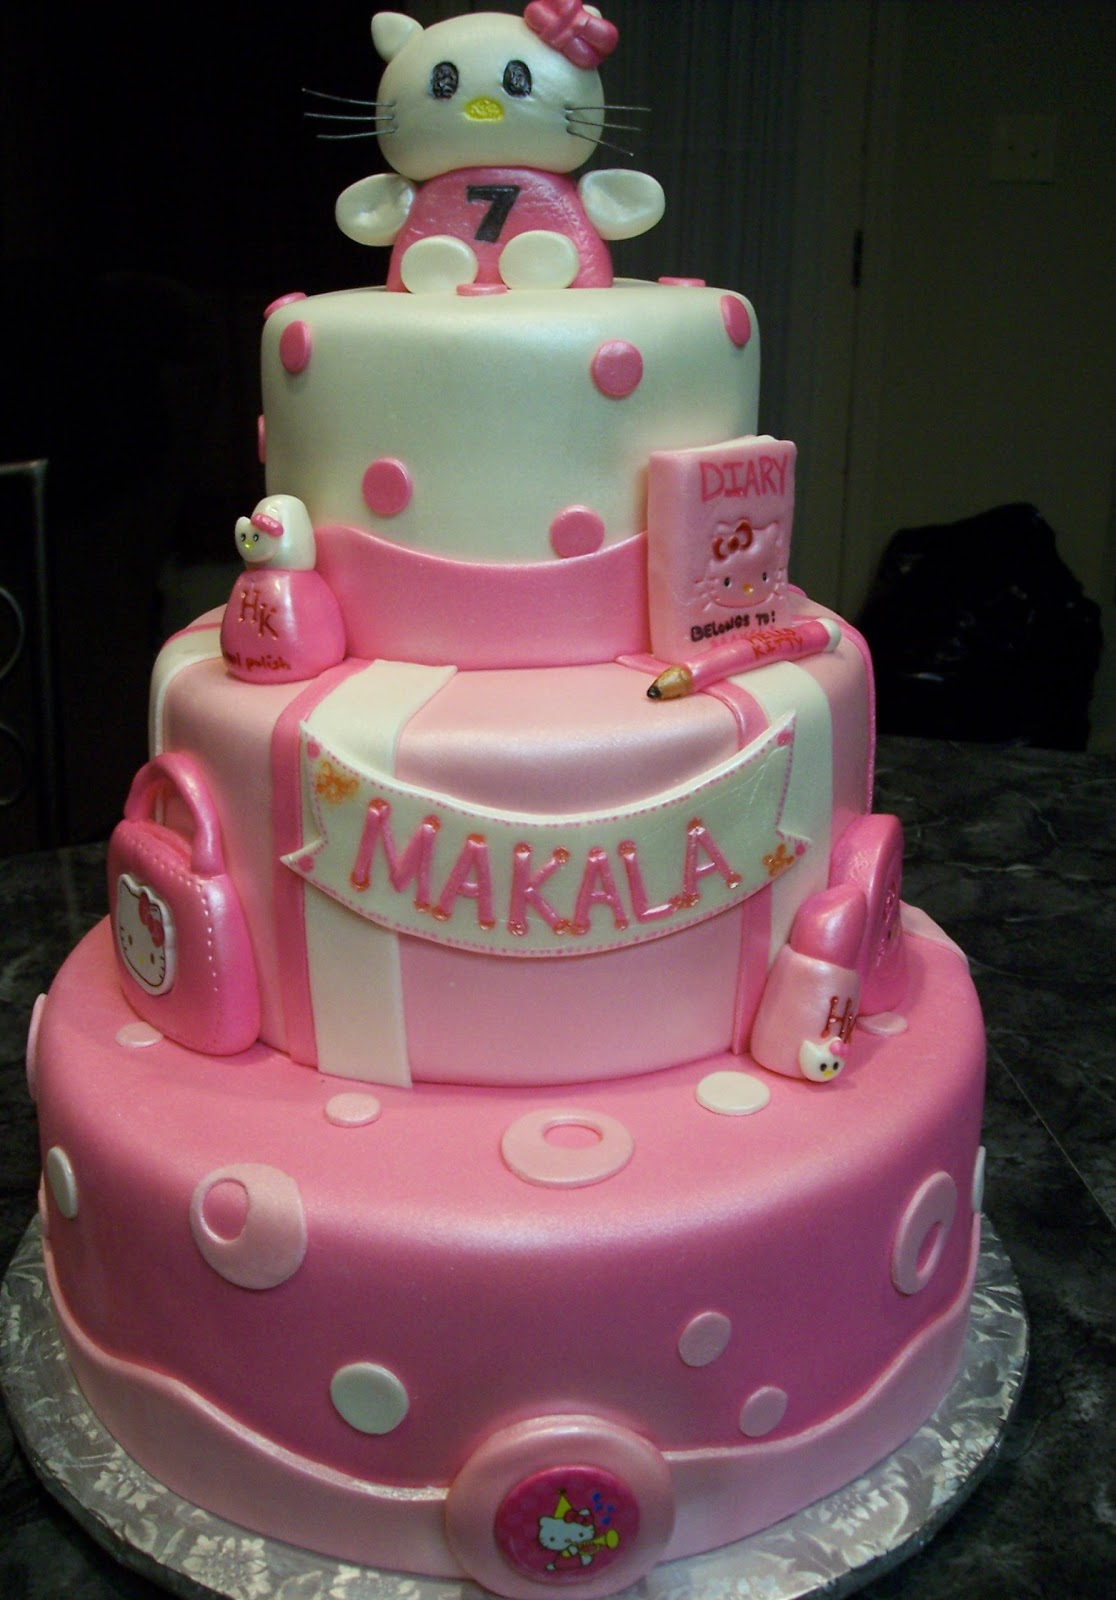 Images Of A Hello Kitty Cake : MyMoniCakes: Hello Kitty Cake with Gum Paste Topper and ...